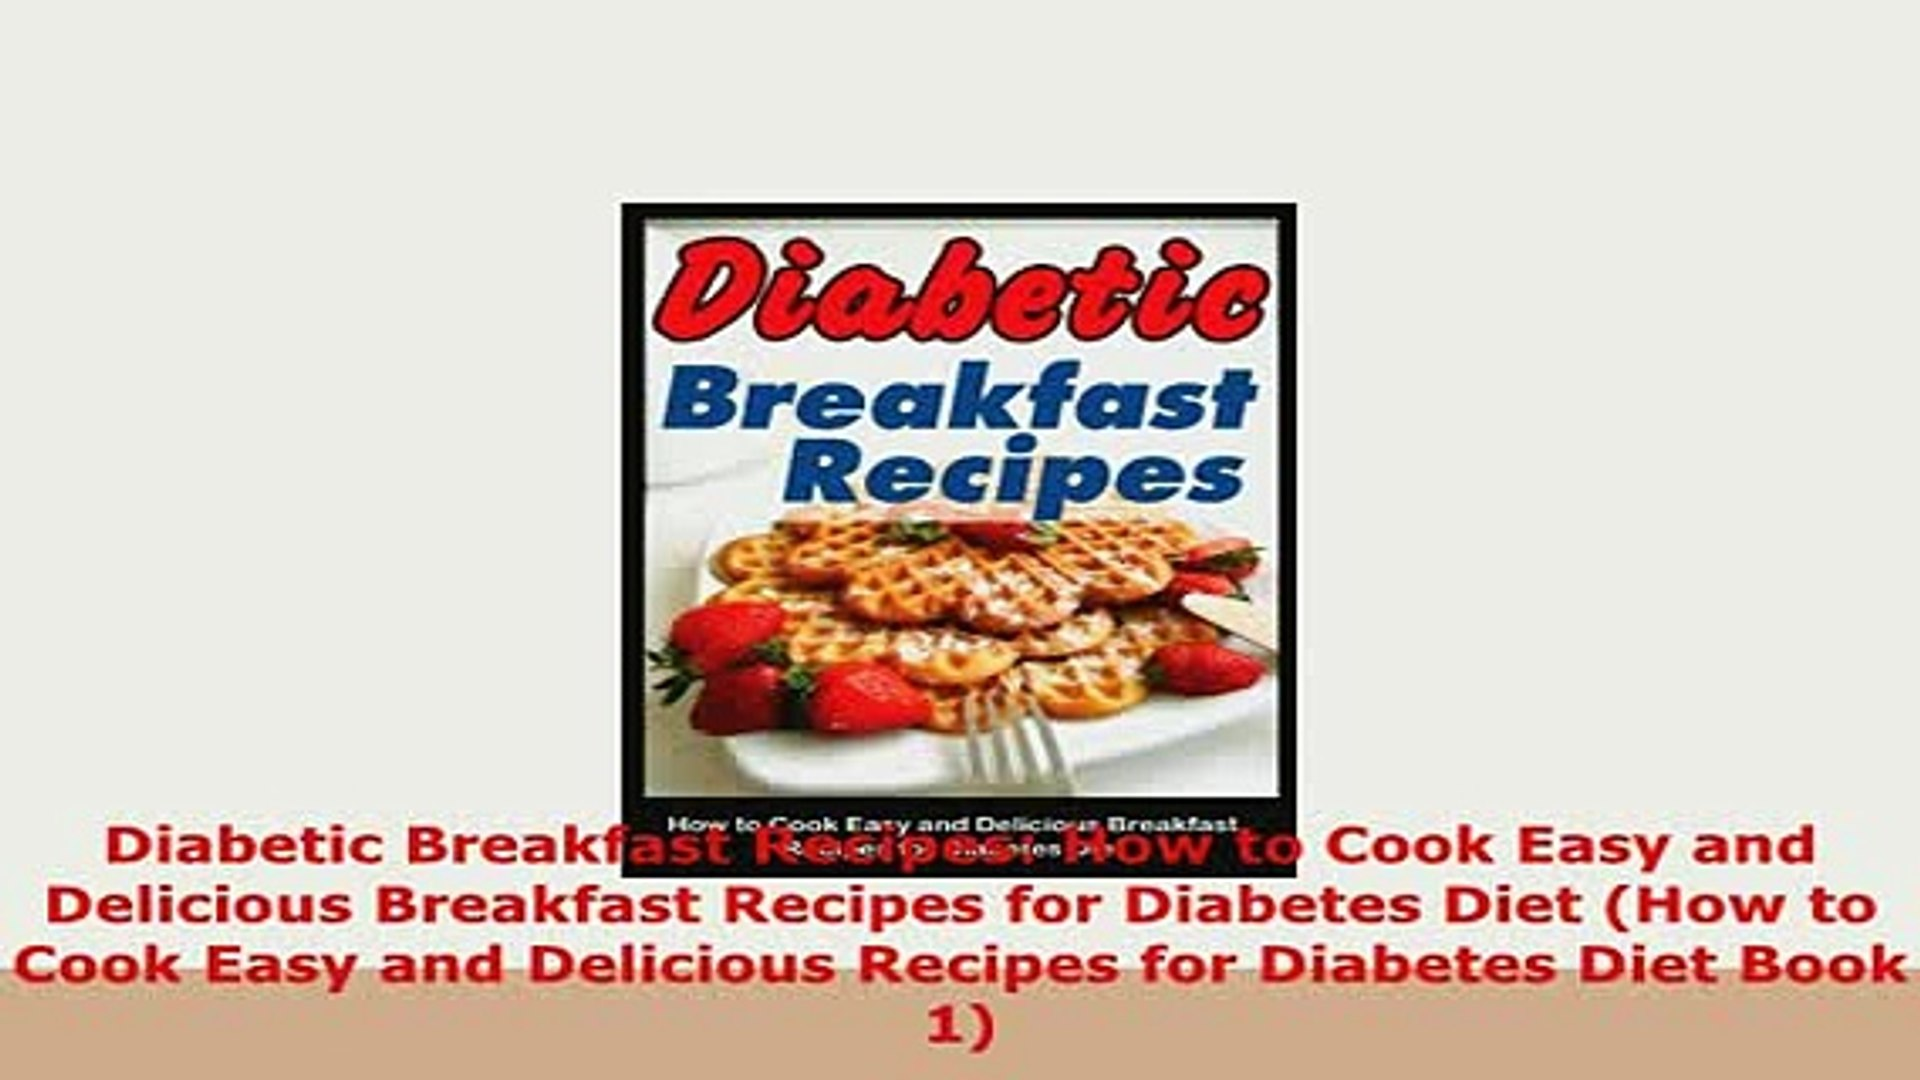 Download Diabetic Breakfast Recipes How To Cook Easy And Delicious Breakfast Recipes For Diabetes Free Books